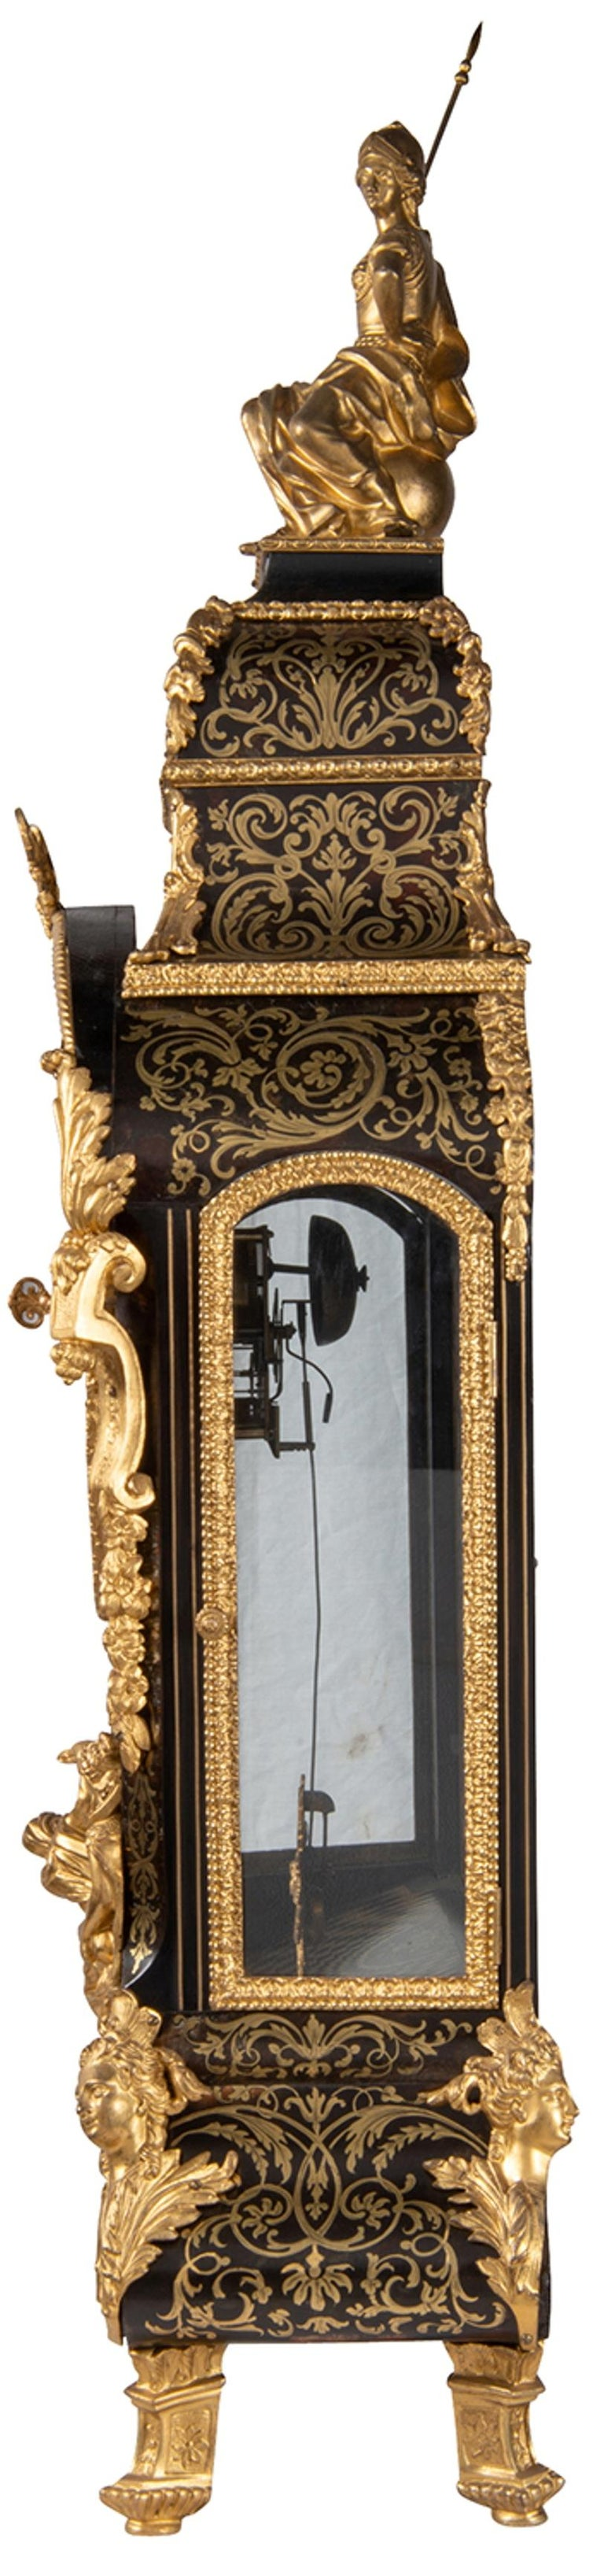 19th Century French Boulle Mantel Clock For Sale 5